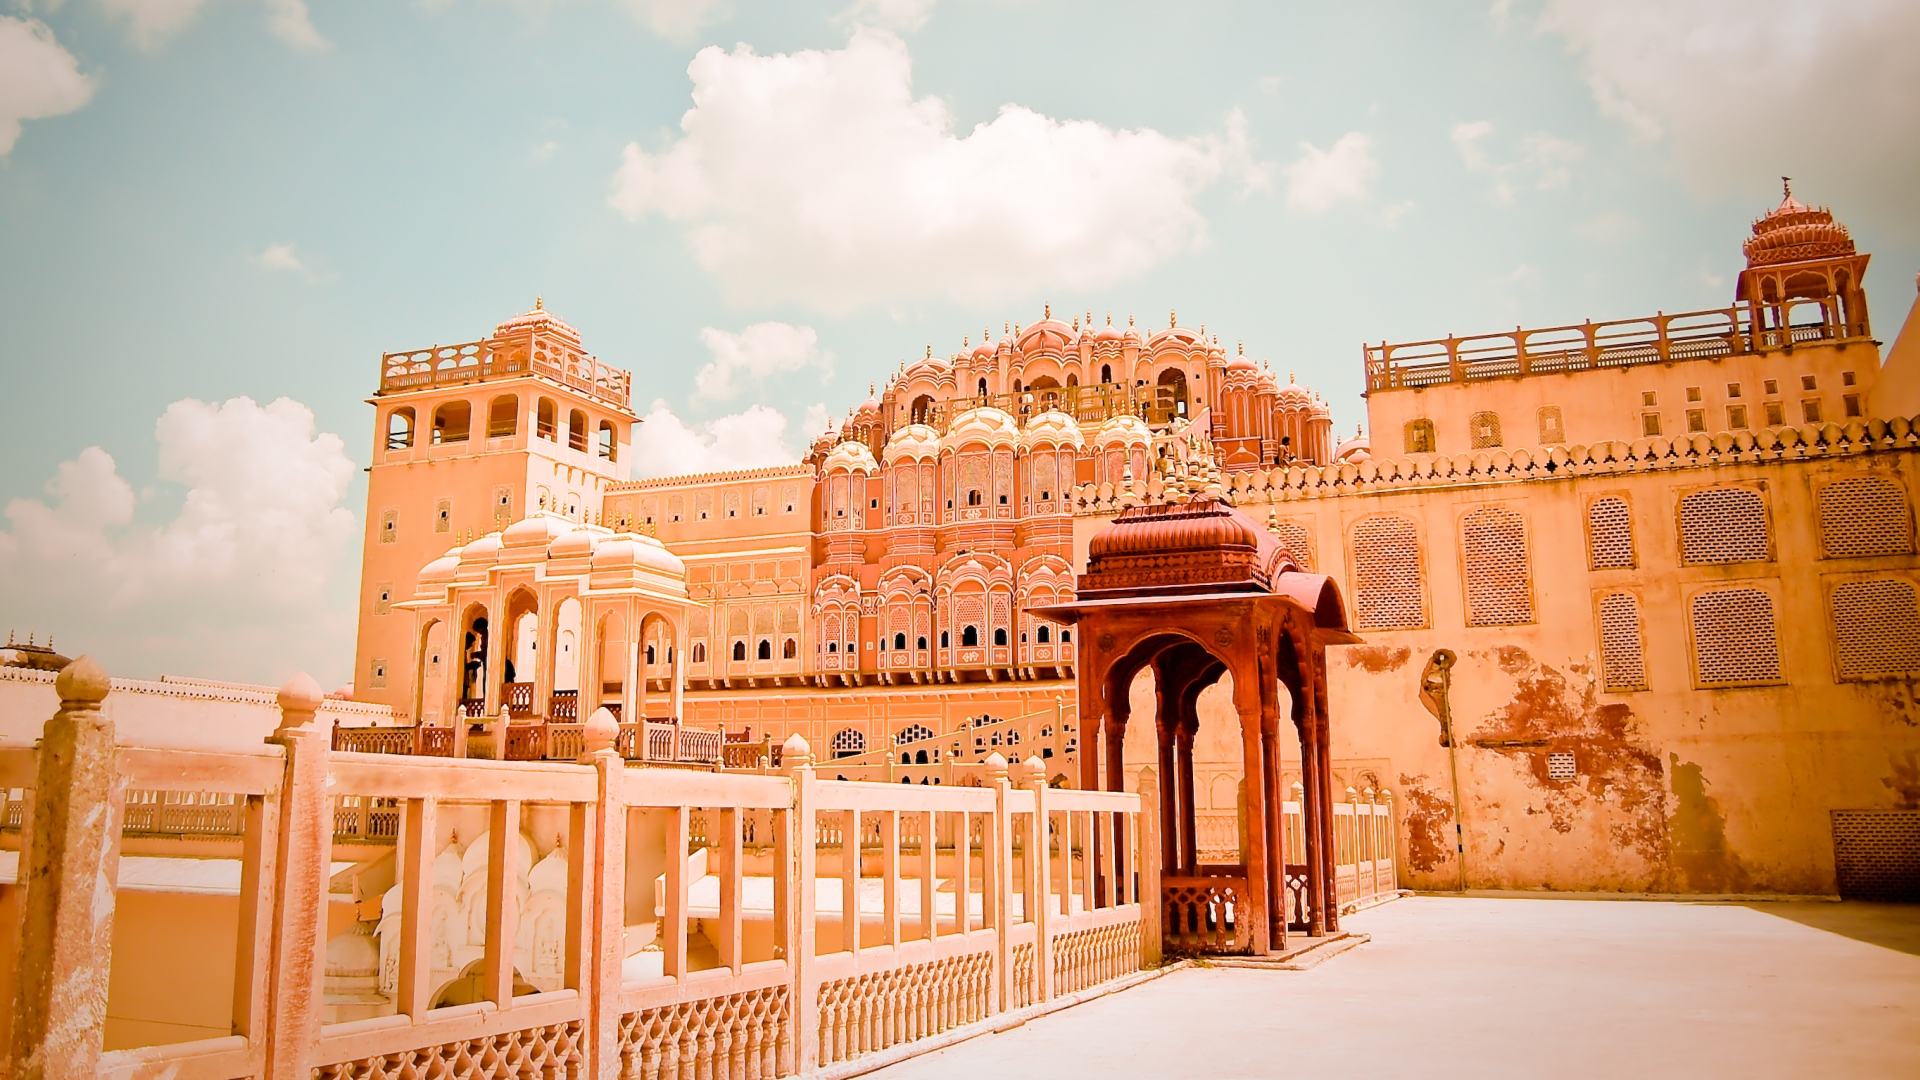 Hawa mahal full hd wallpaper and background 1920x1080 for Wallpaper for home walls jaipur